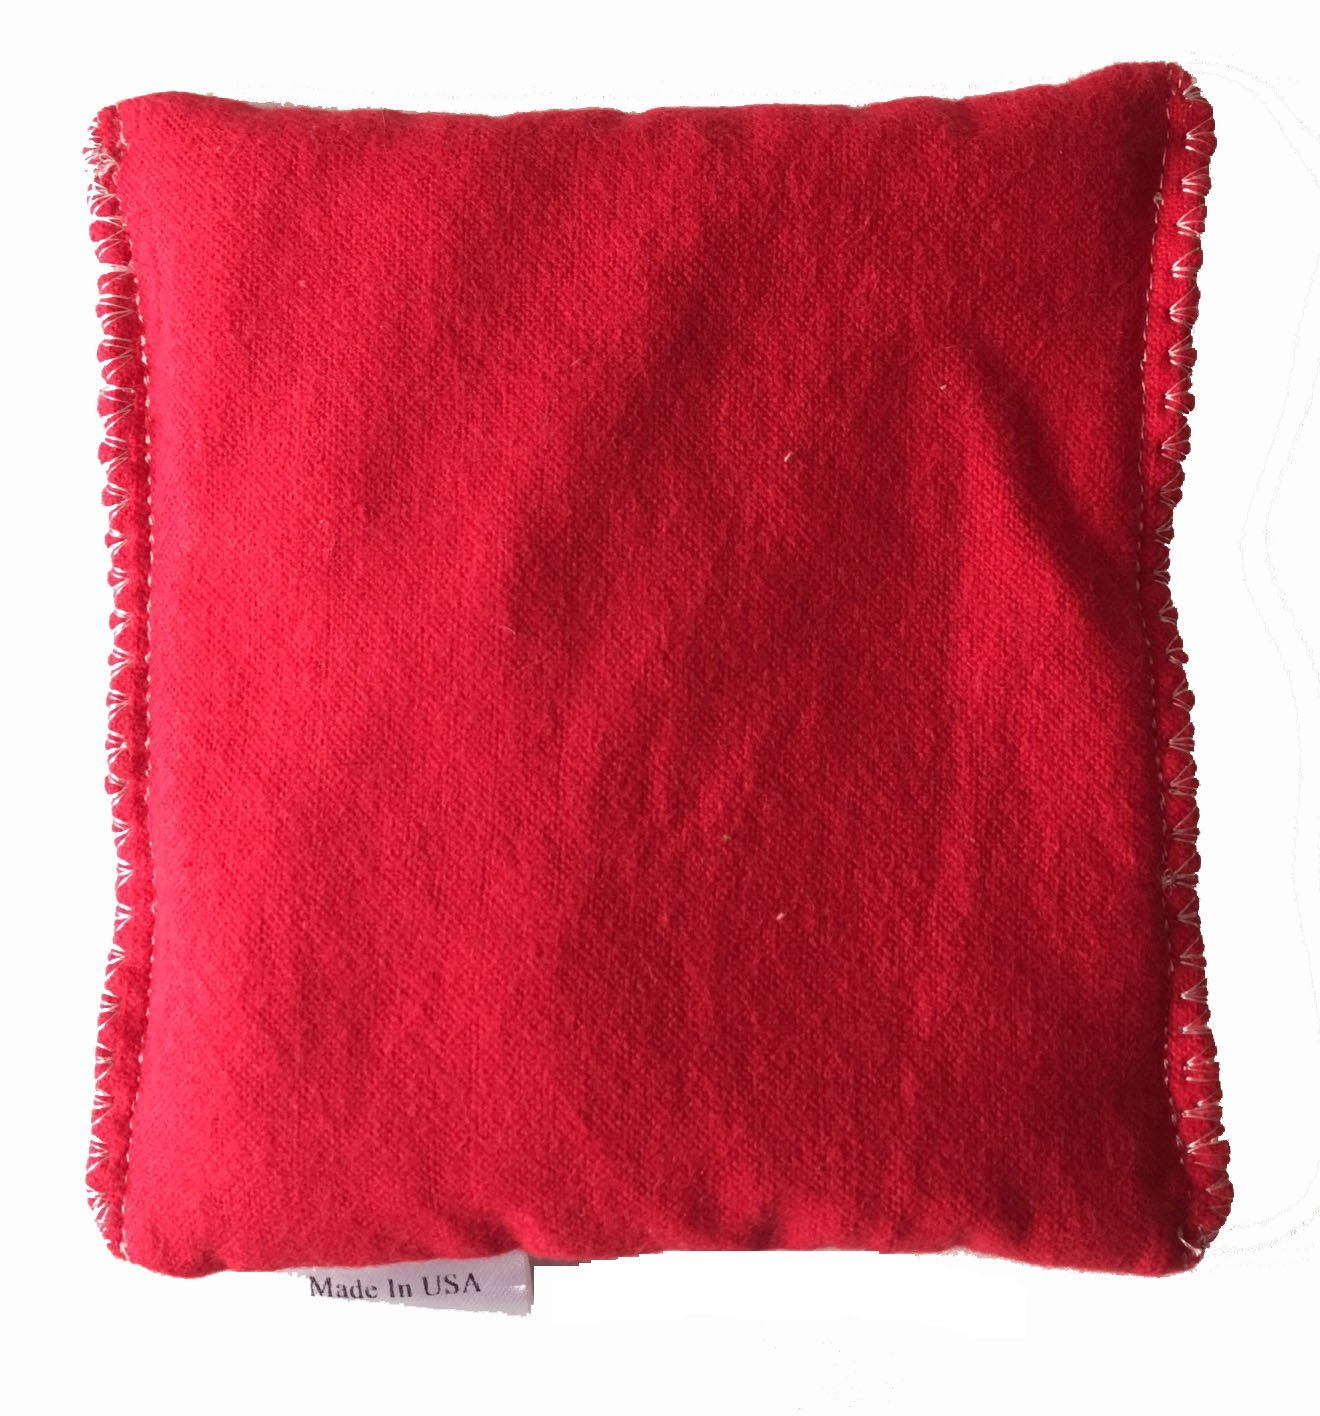 Red Color Design 2packYou Pick Scent Hot and Cold Pack Reusable Microwaveable Rice Pack 5 inches by 5 inches Handmade reusable hot pads and reusable ice packs Hot Cold Pack Ideal Gift